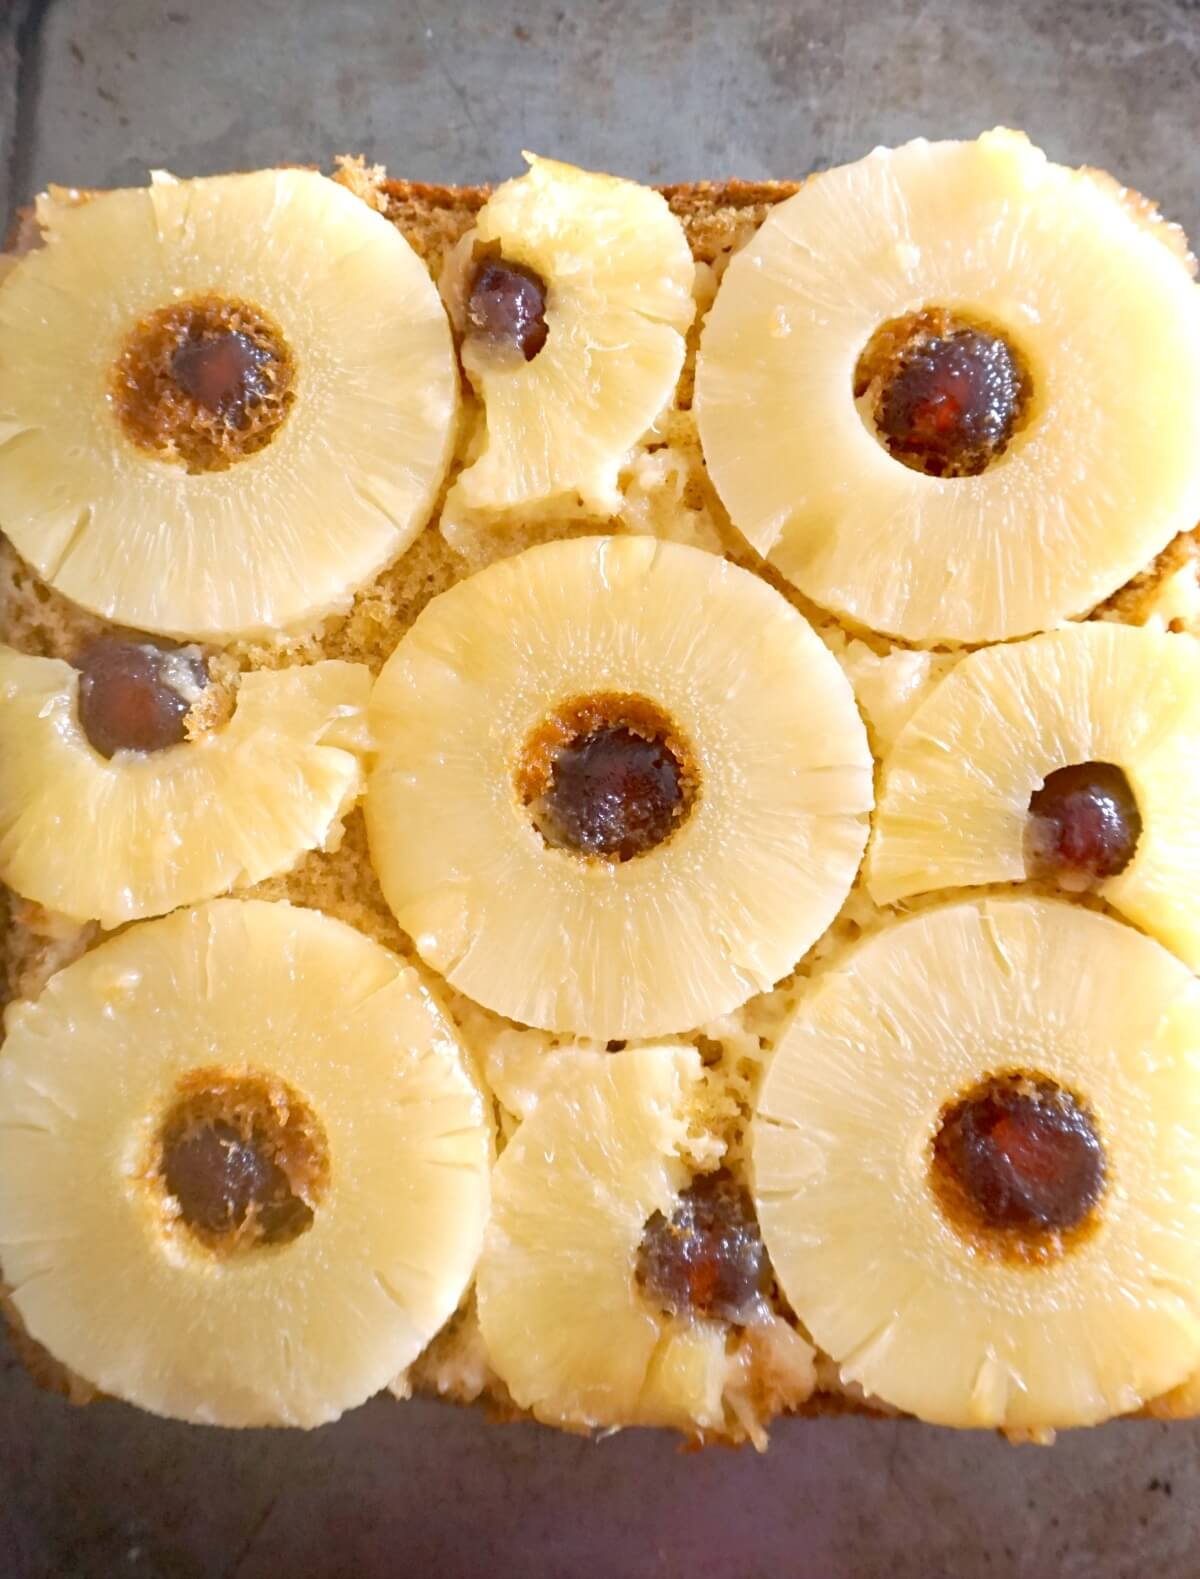 Overhead shoot of a pan with pineapple upside down cake